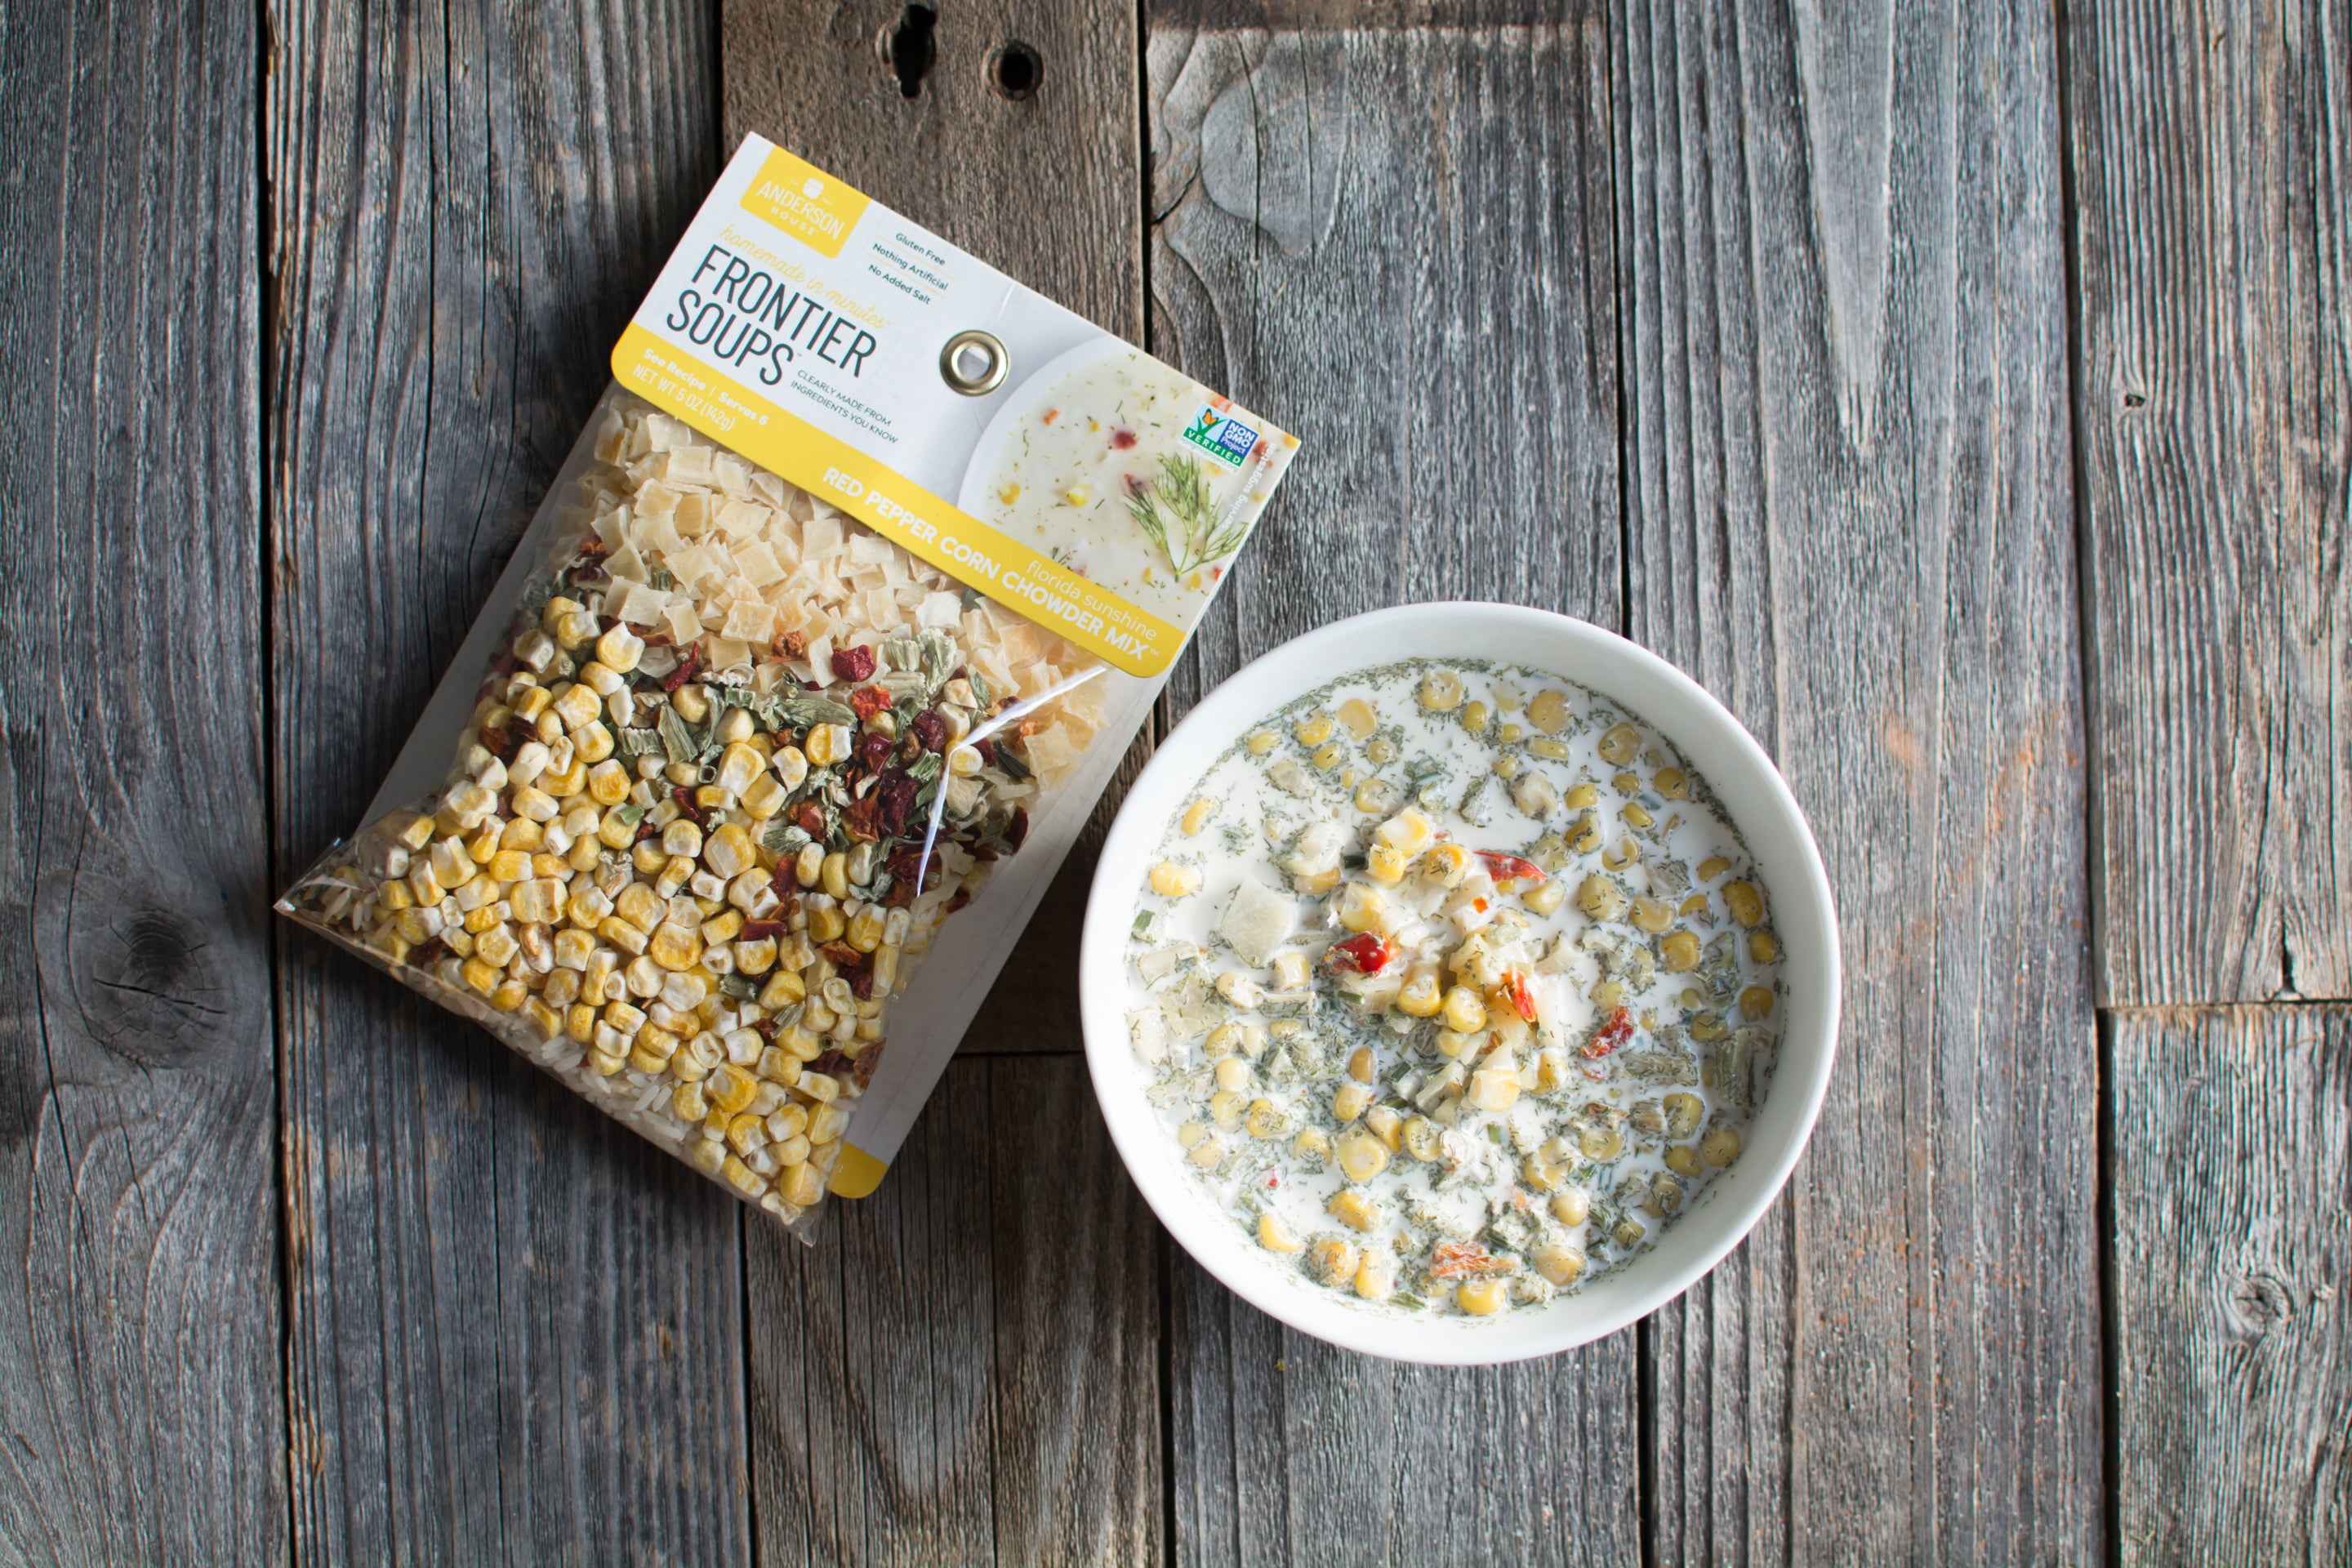 Florida Sunshine Red Pepper Corn Chowder Soup Mix